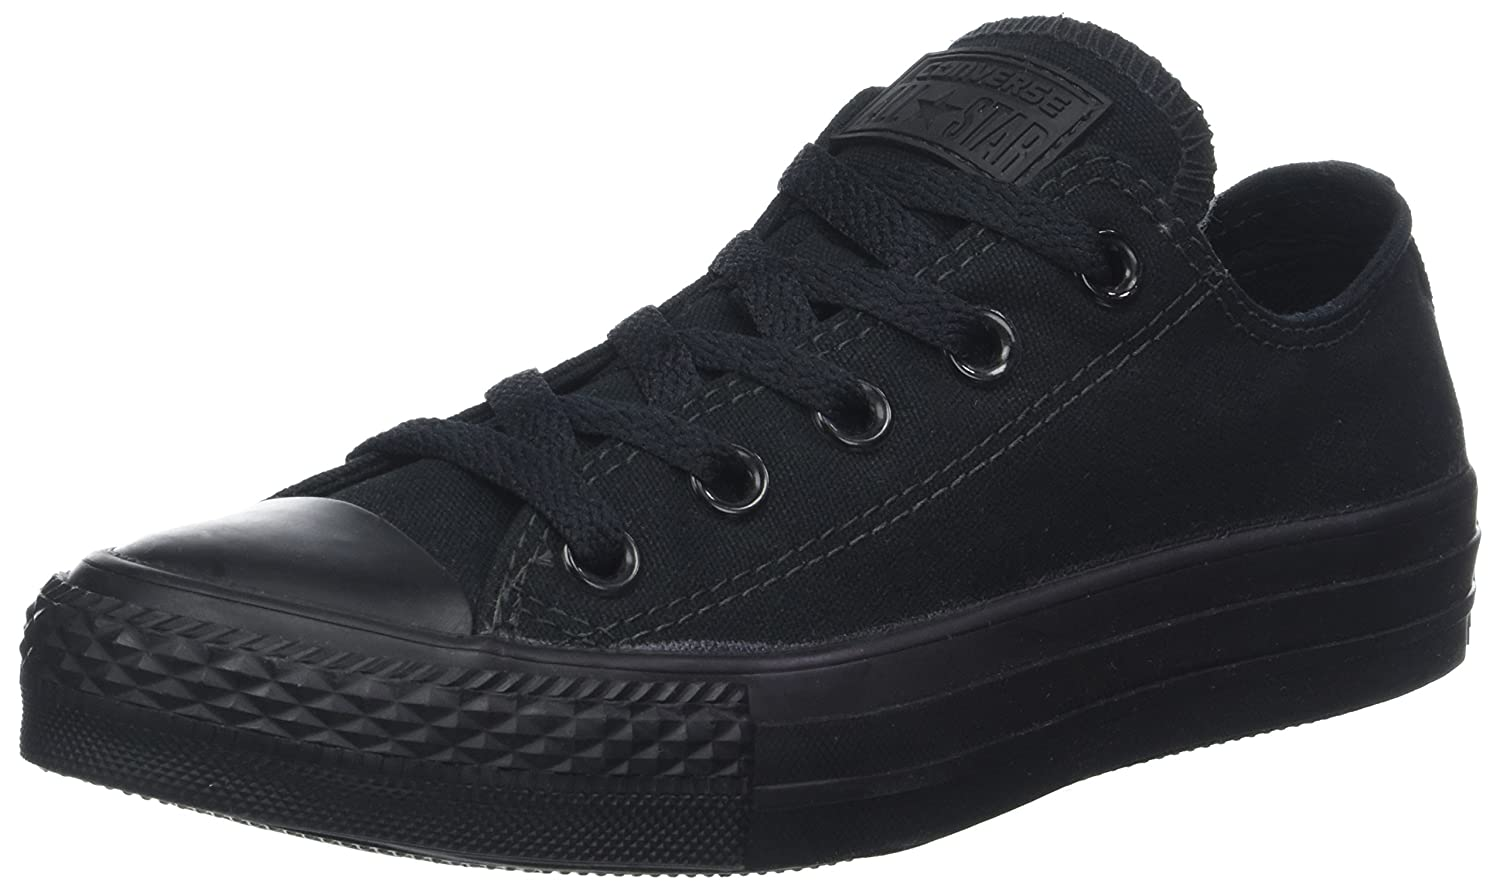 Converse Men's Chuck Taylor All Star Seasonal Ox B000FY2A4A 9.5 B(M) US Women / 7.5 D(M) US Men|Black Monochrome